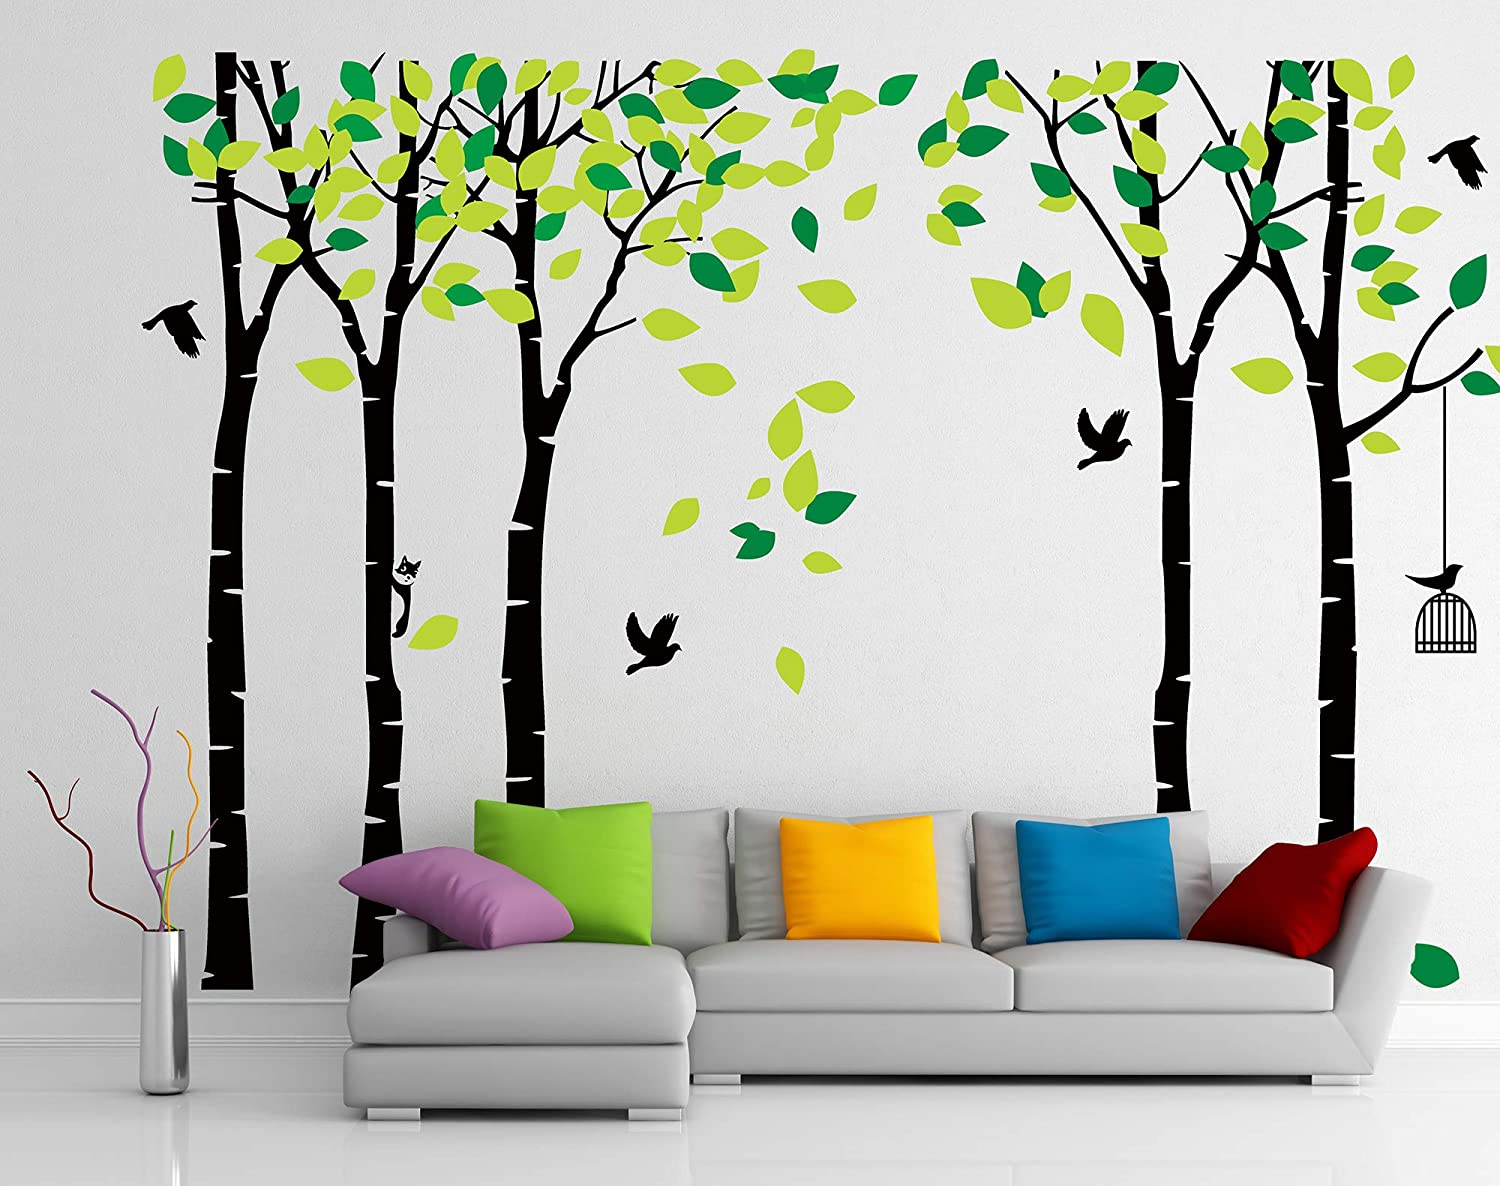 Jungle Tree Wall Decal REUSABLE Fabric Wall Decal Eco-friendly Pvc Free 804